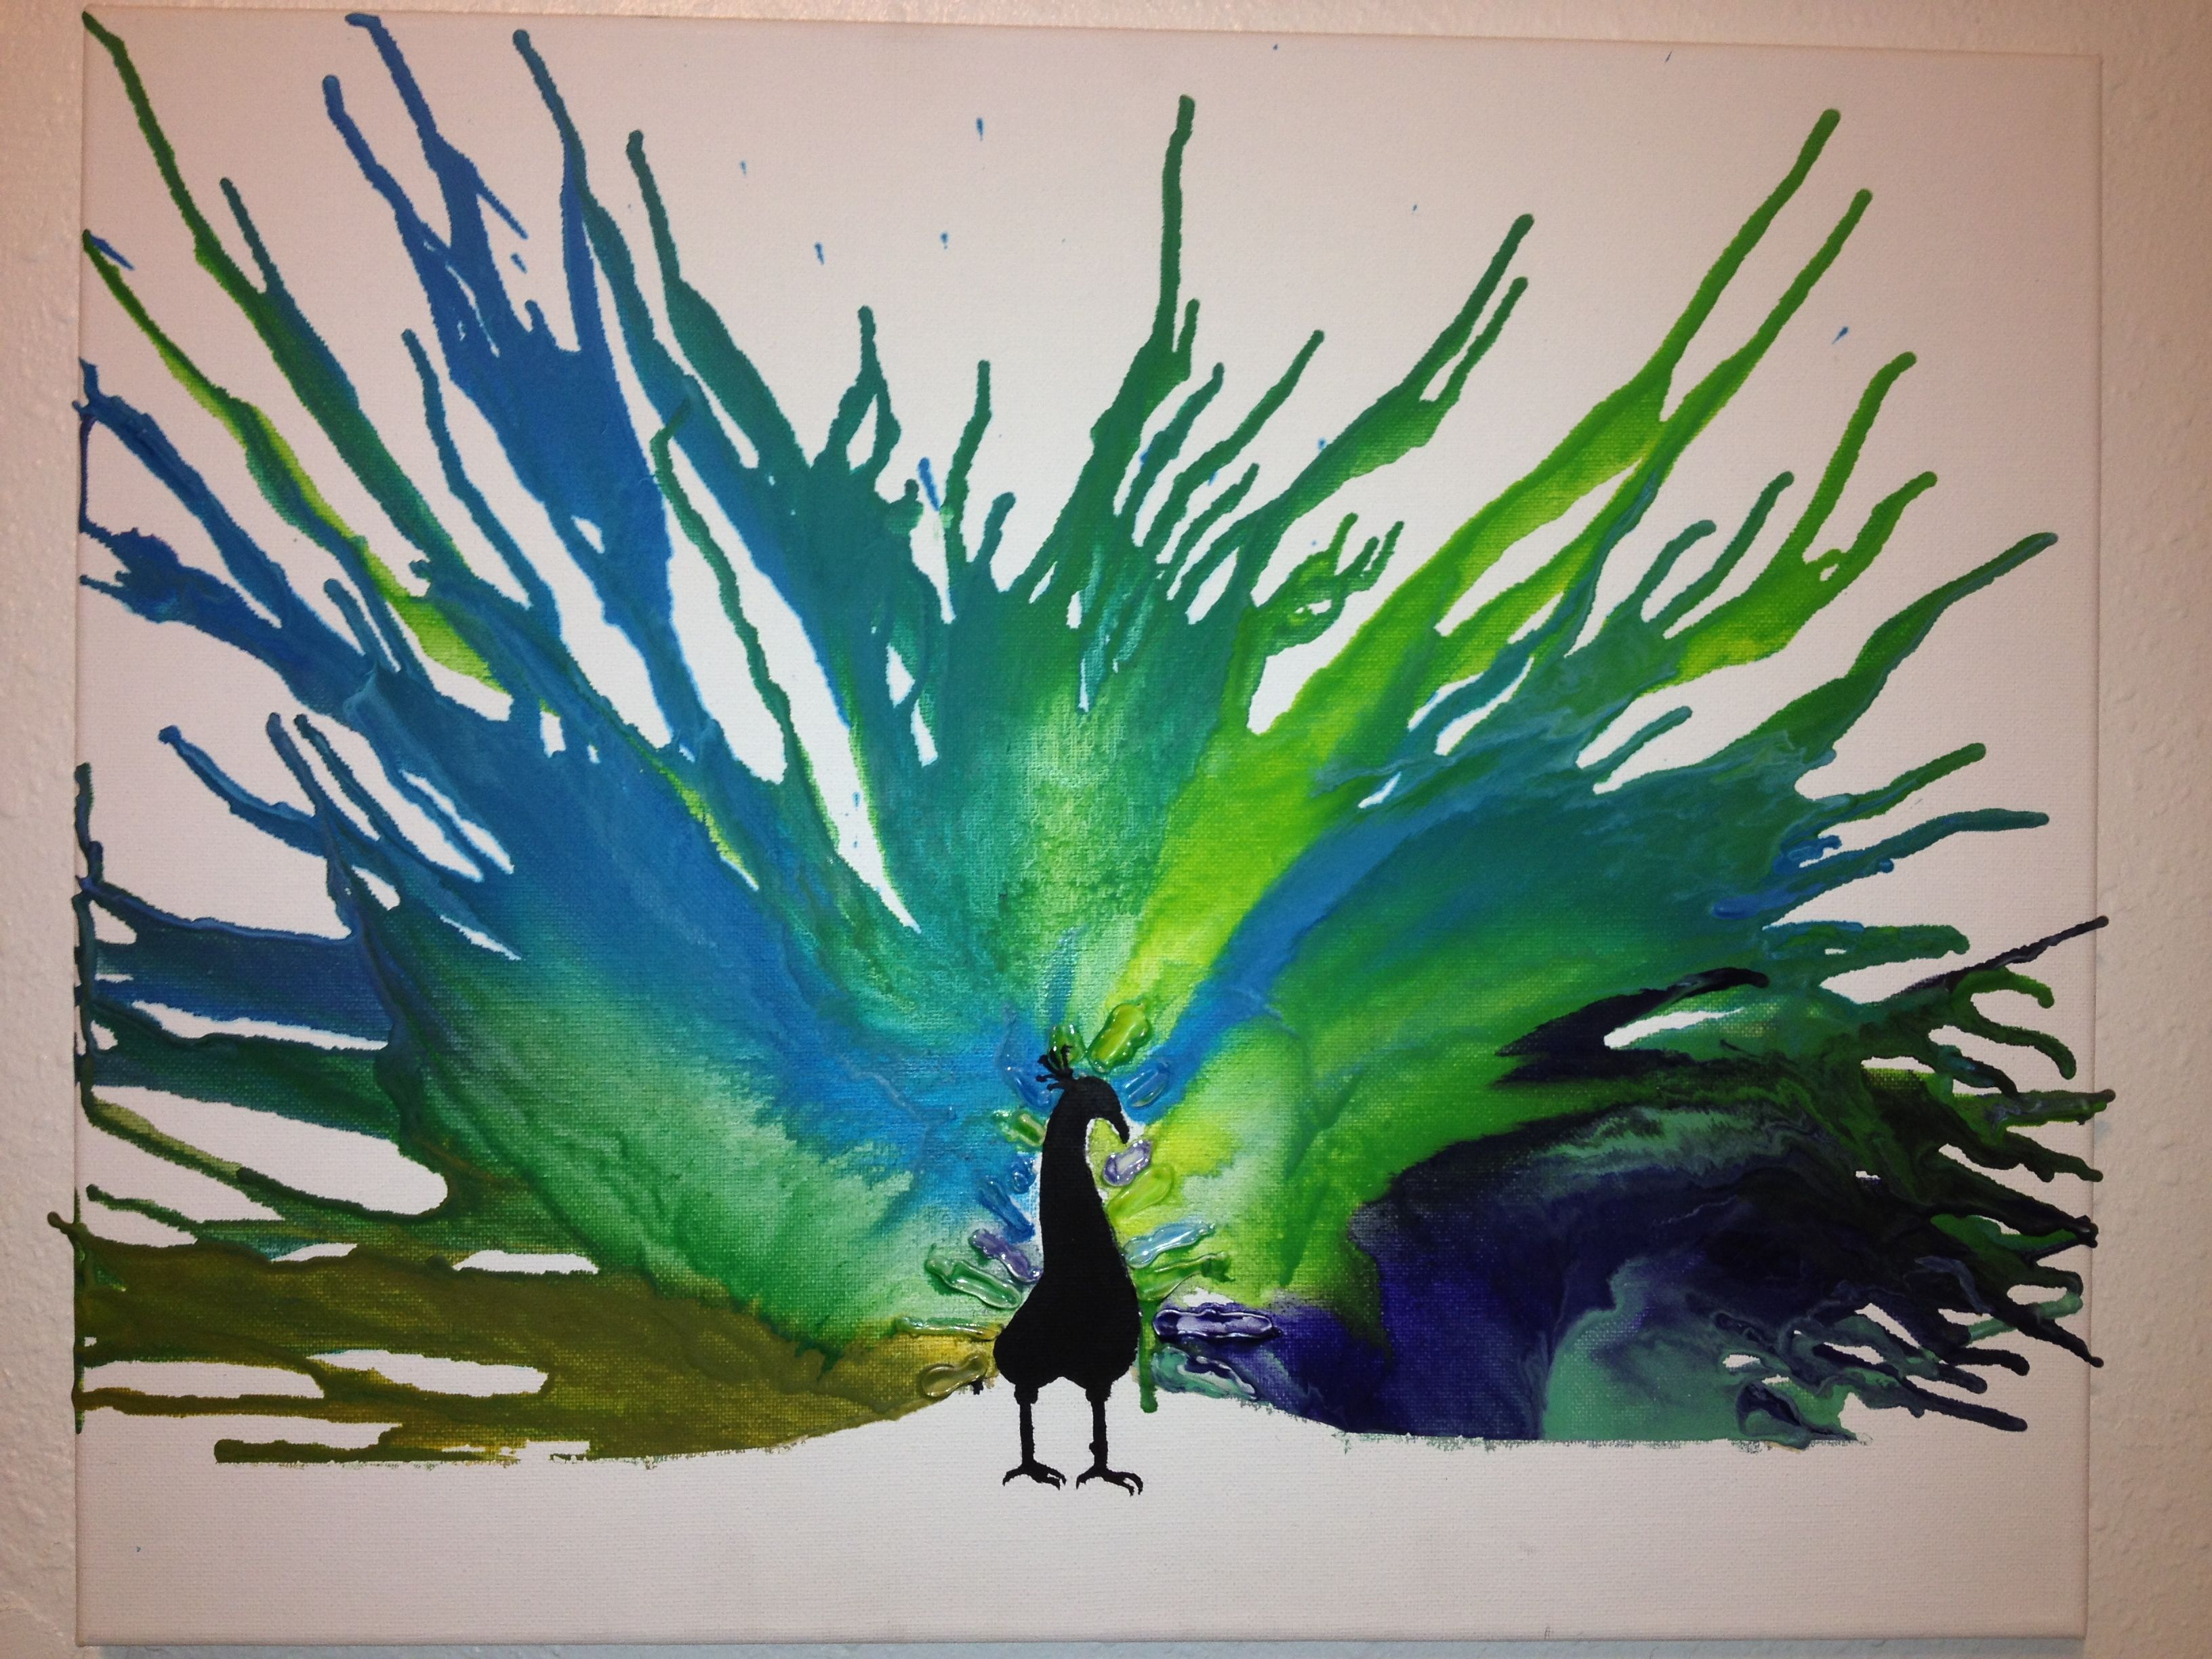 Peacock Crayon Art Crayon Art Diy Crayon Crafts Crayon Art